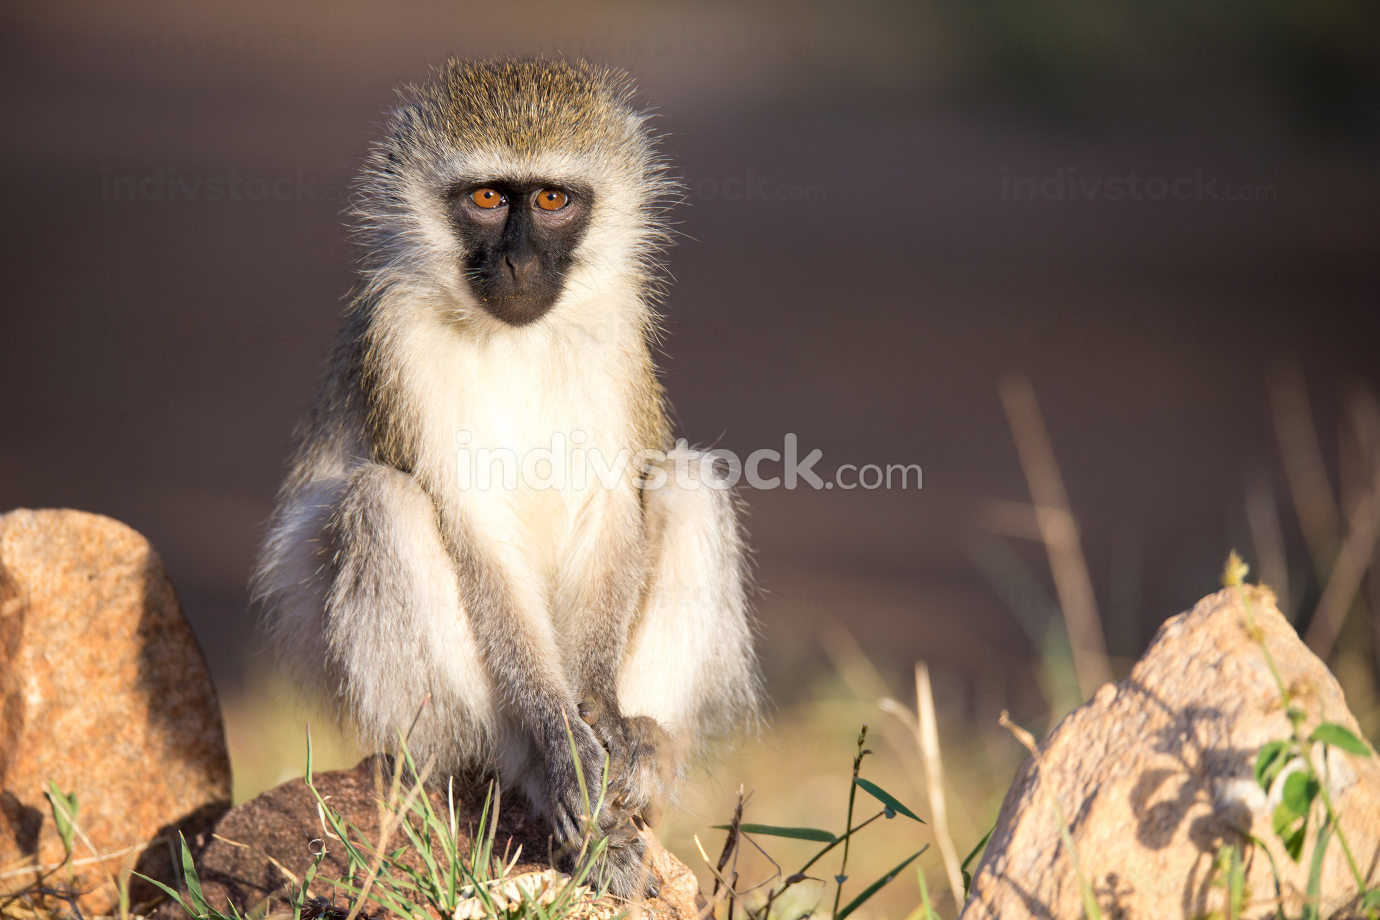 A monkey sits and looks around